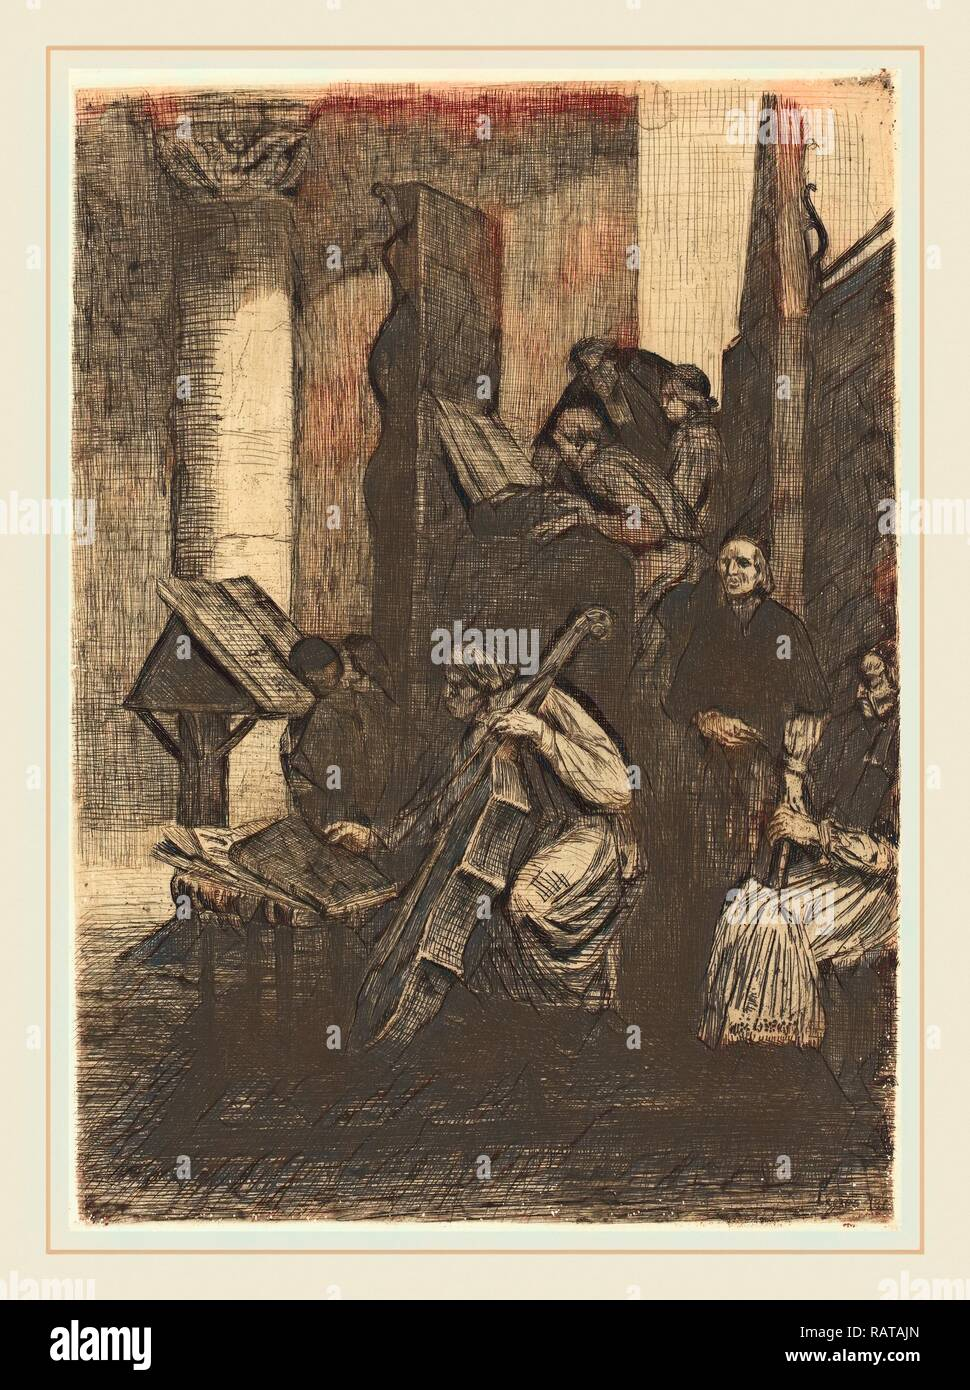 Alphonse Legros (French, 1837-1911), Choir in a Spanish Church (Le choeur d'une eglise espagnole), 1860, etching reimagined - Stock Image